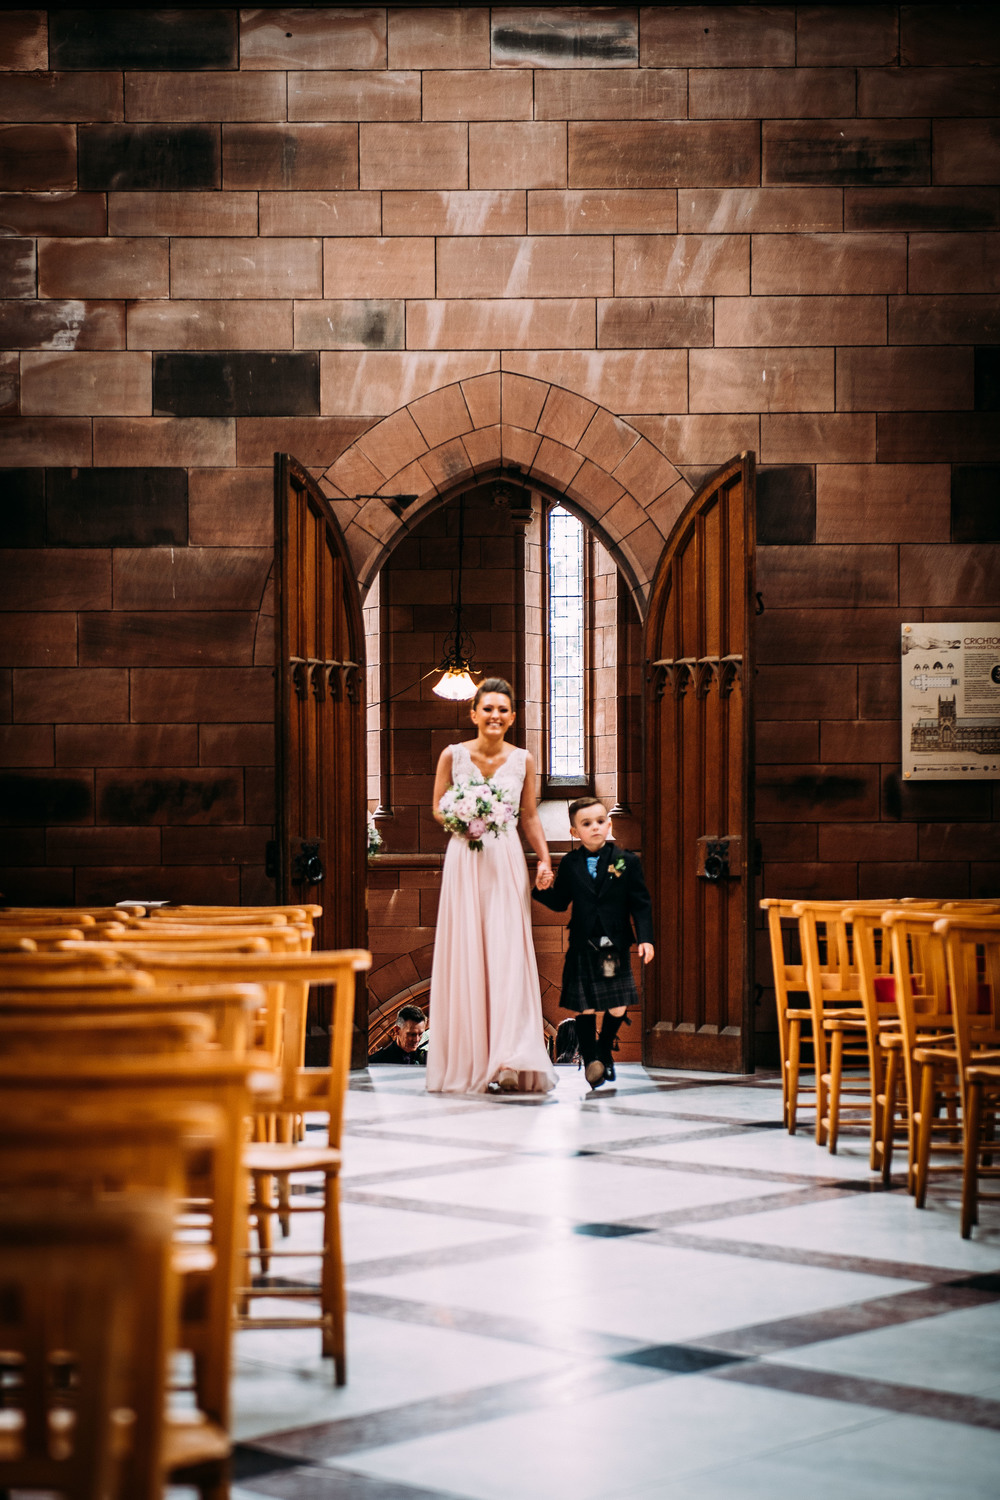 Dumfries-Wedding-Tom-Cairns-Photography-Easterbrook-Hall-Blush-Pink-Wedding-Details 22